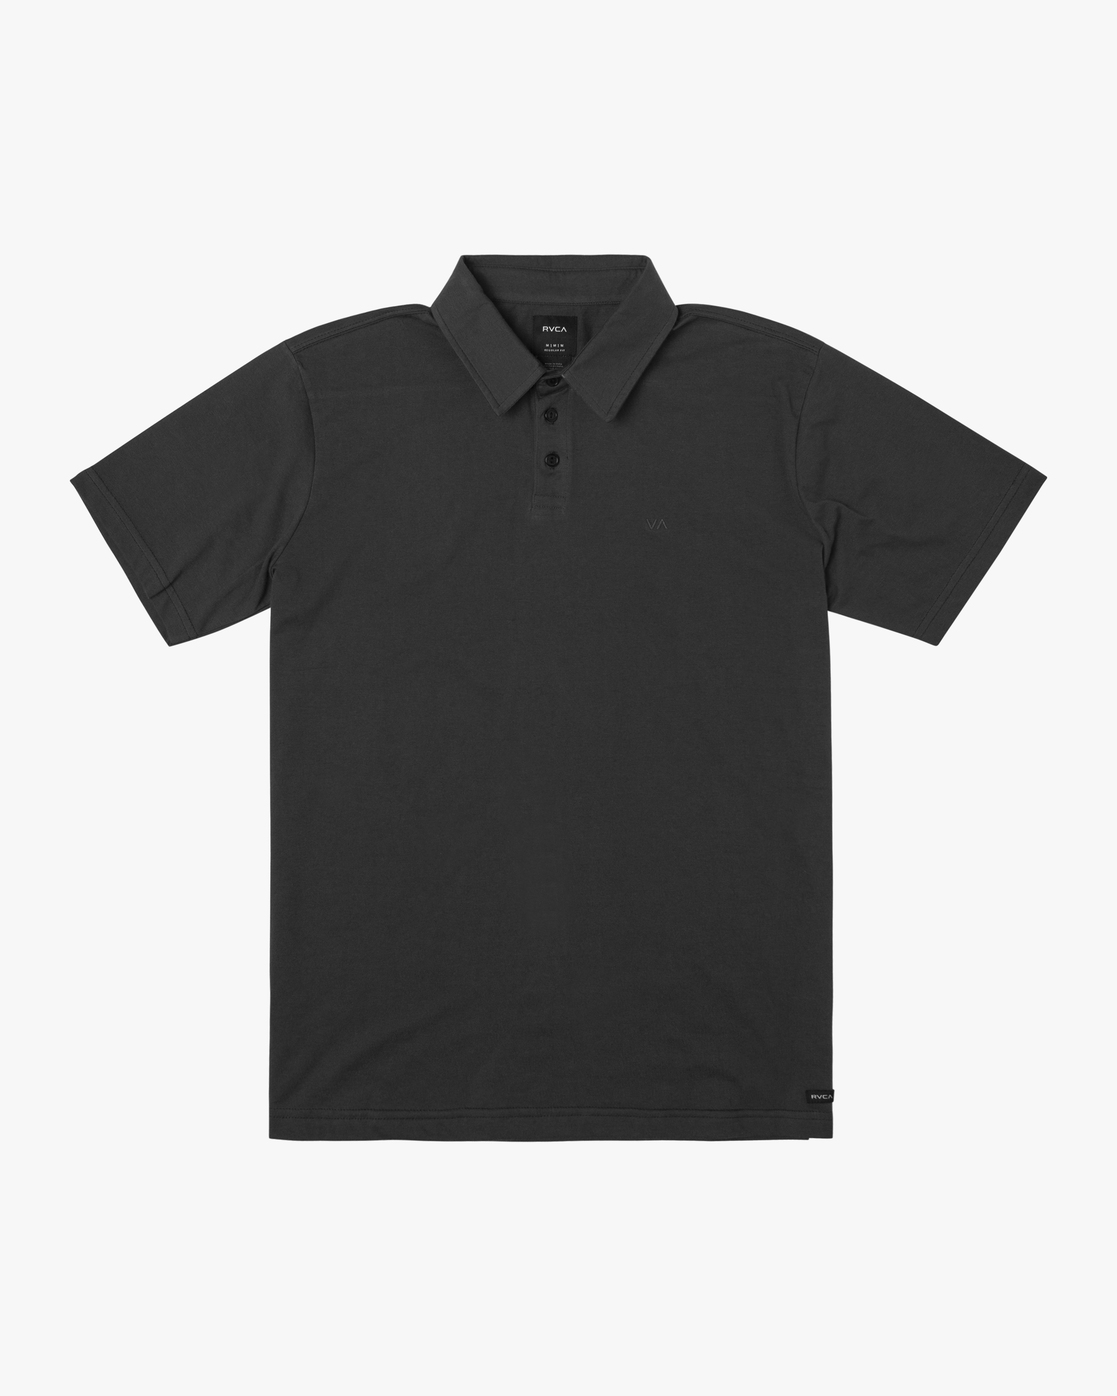 0 SURE THING III POLO SHIRT Black M9101RST RVCA